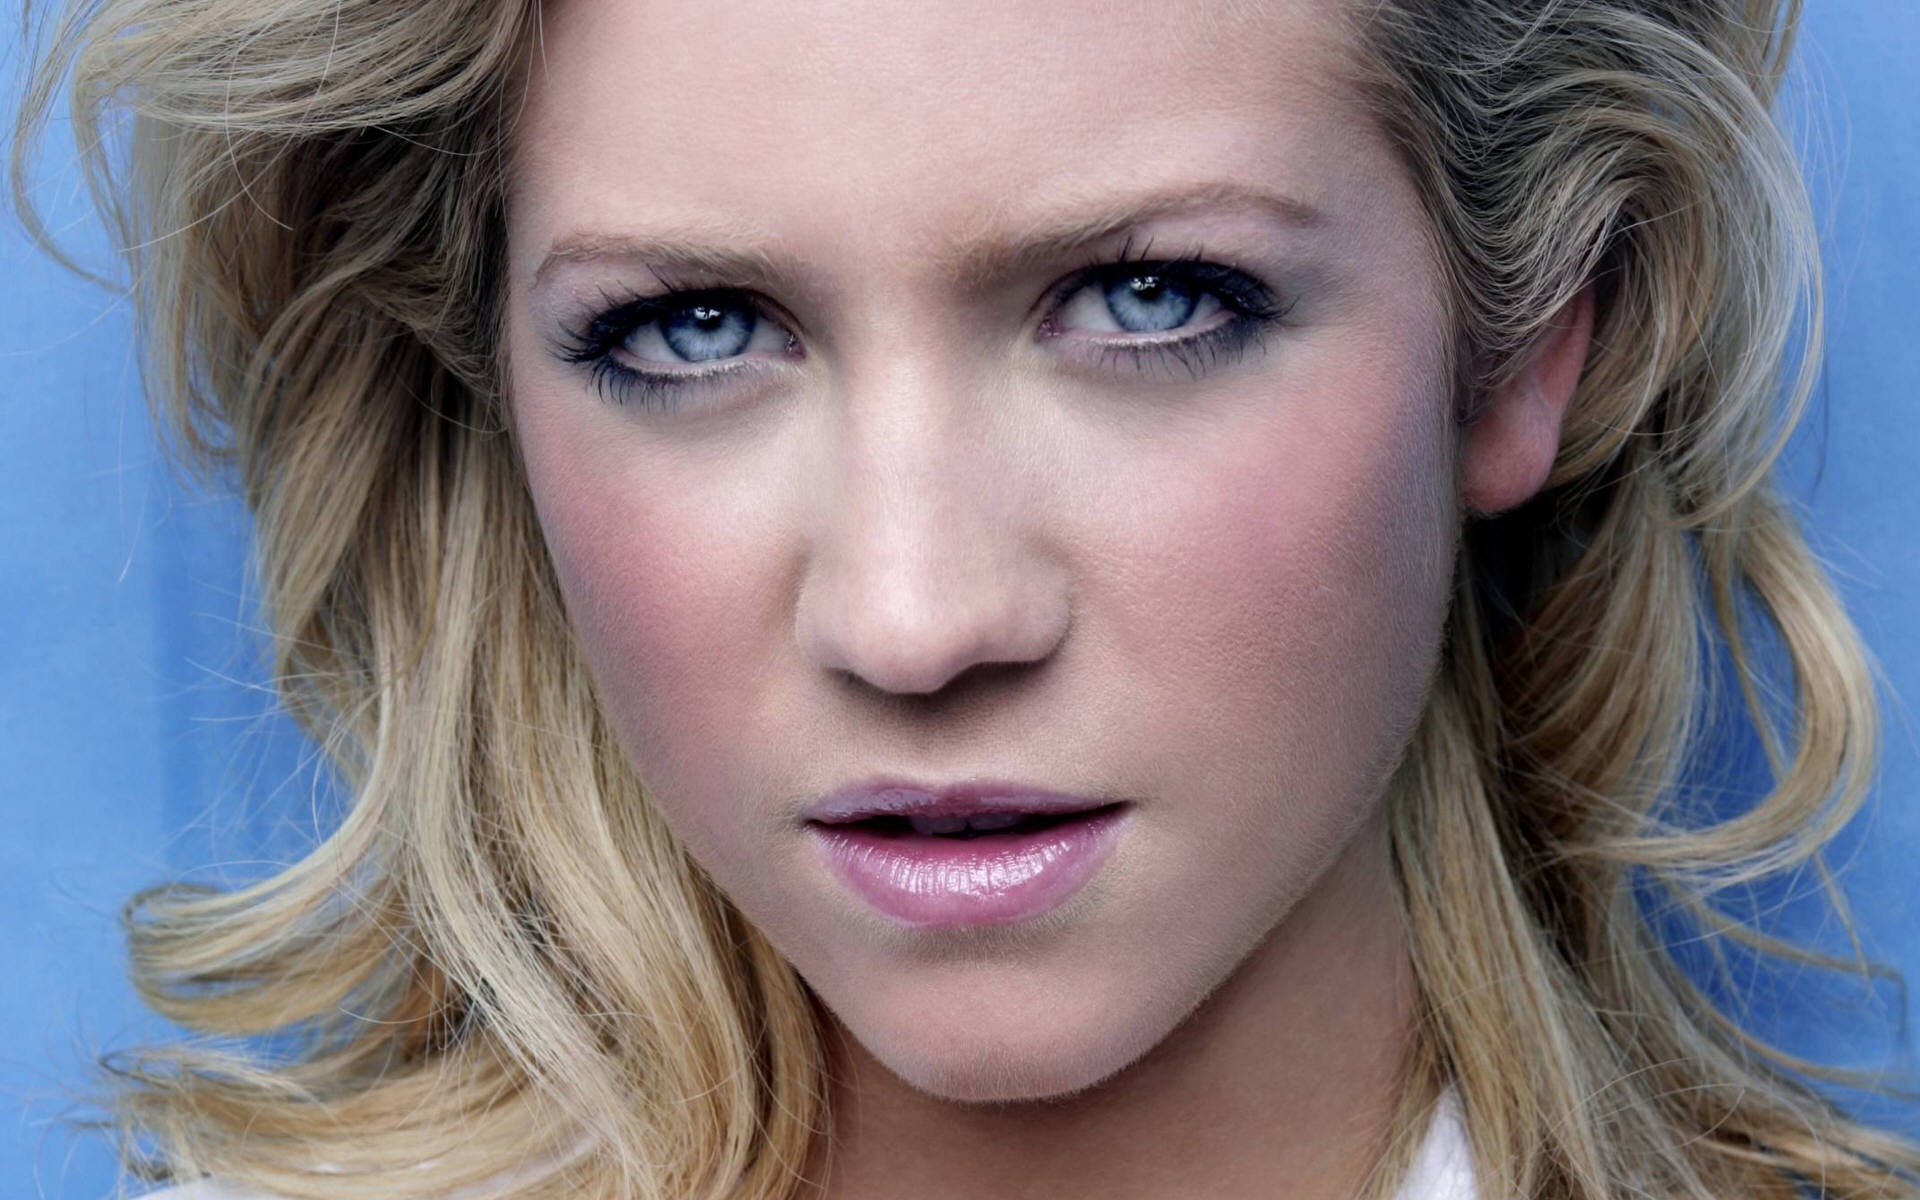 brittany snow face wallpaper 53309